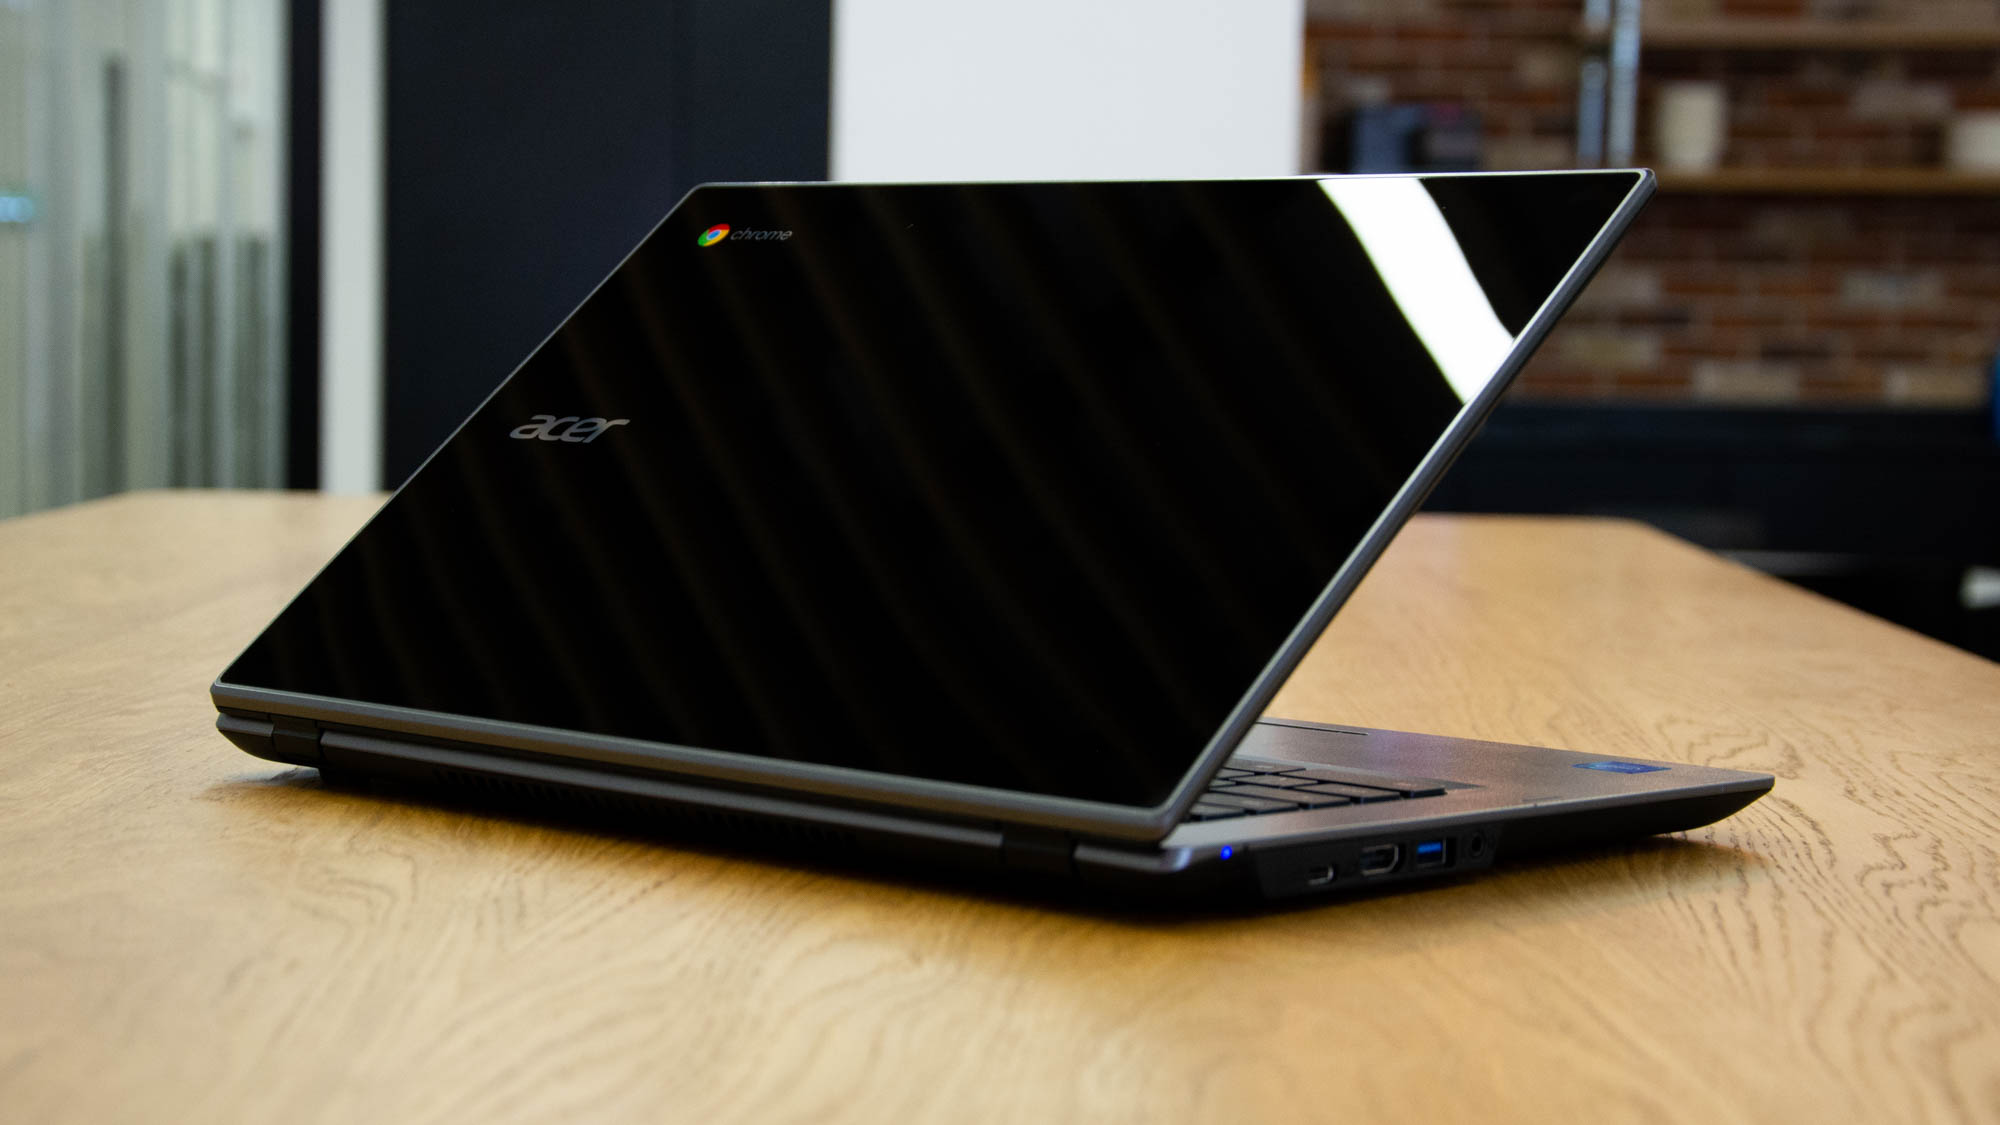 Acer Chromebook 14 for Work review: Imperfect, but the price is right